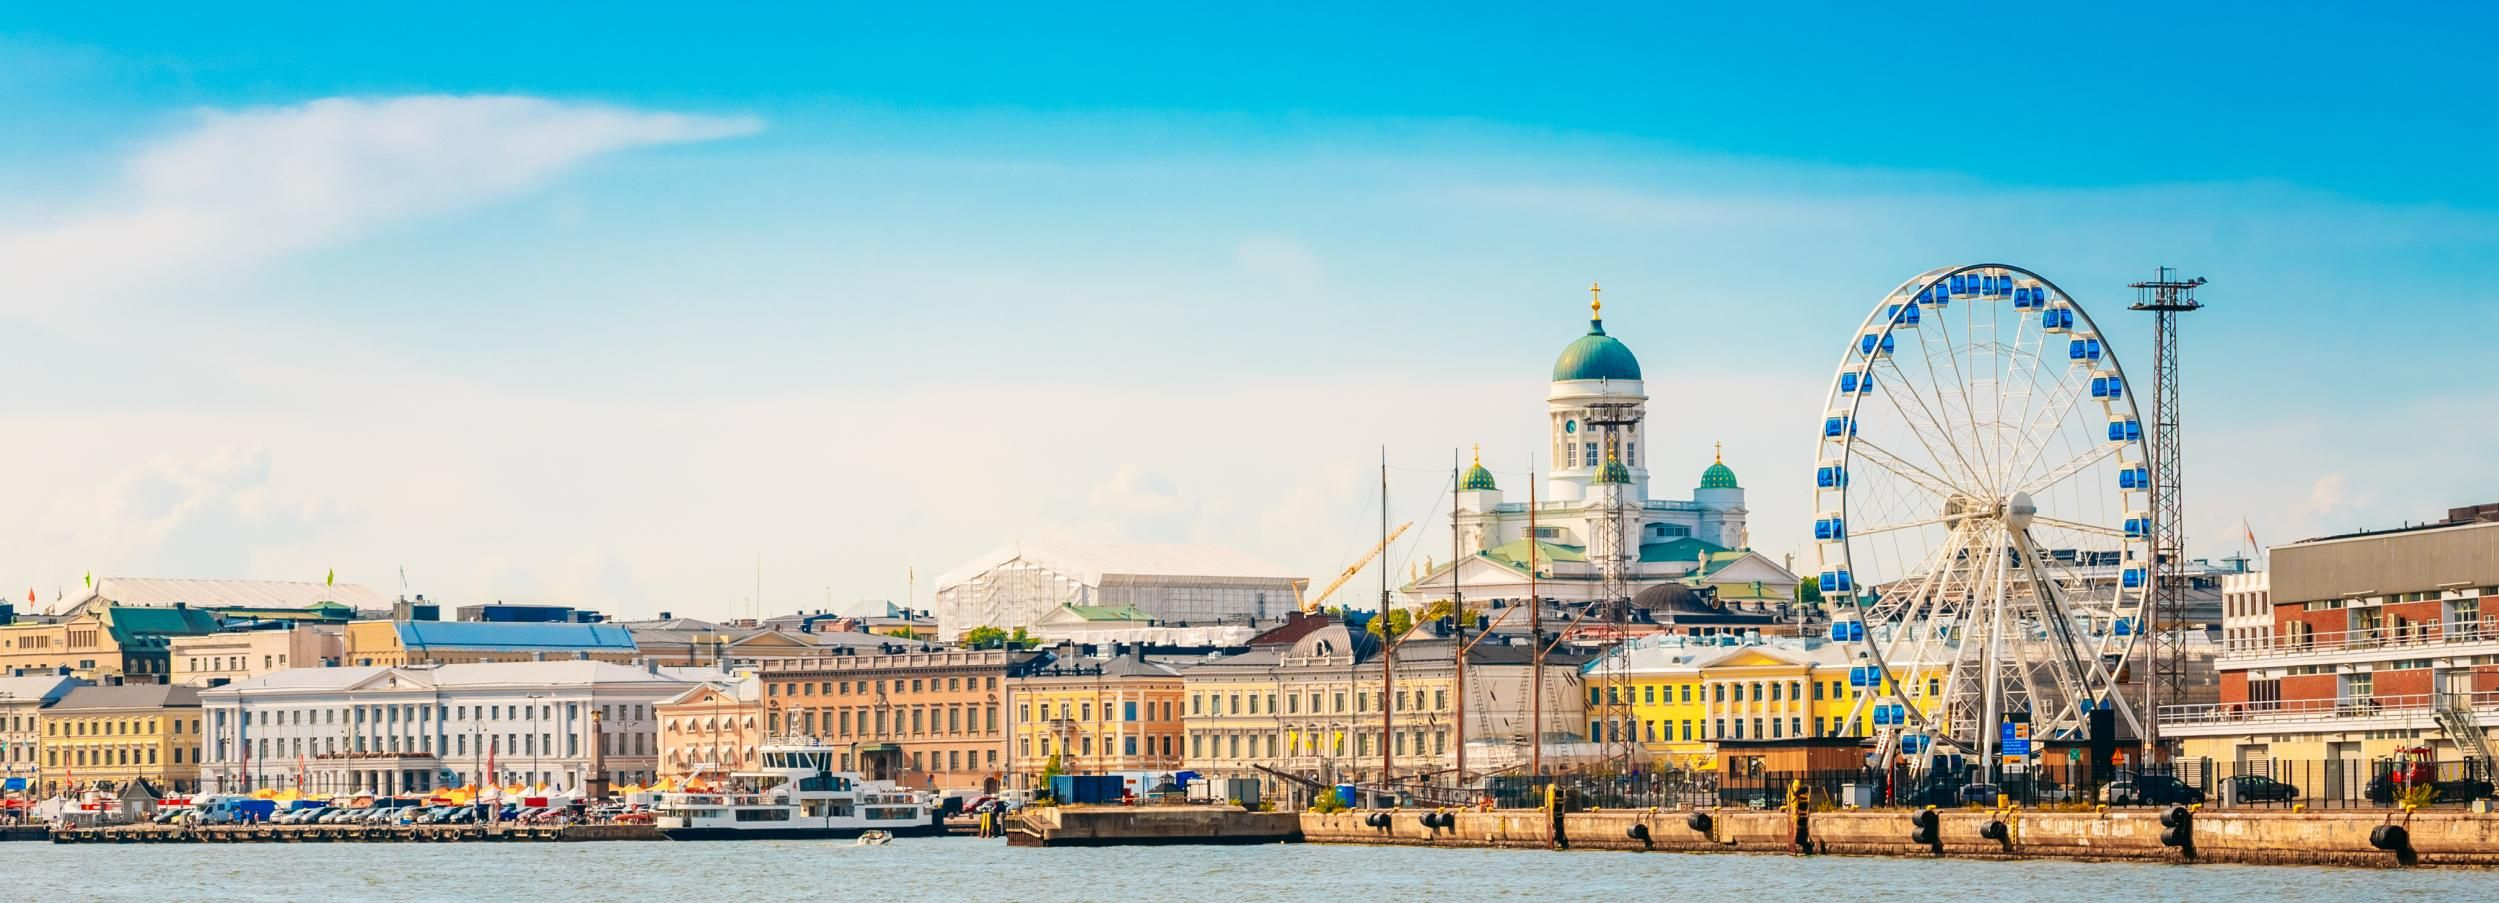 Helsinki Stopover Tour with Round-Trip Airport Transfers